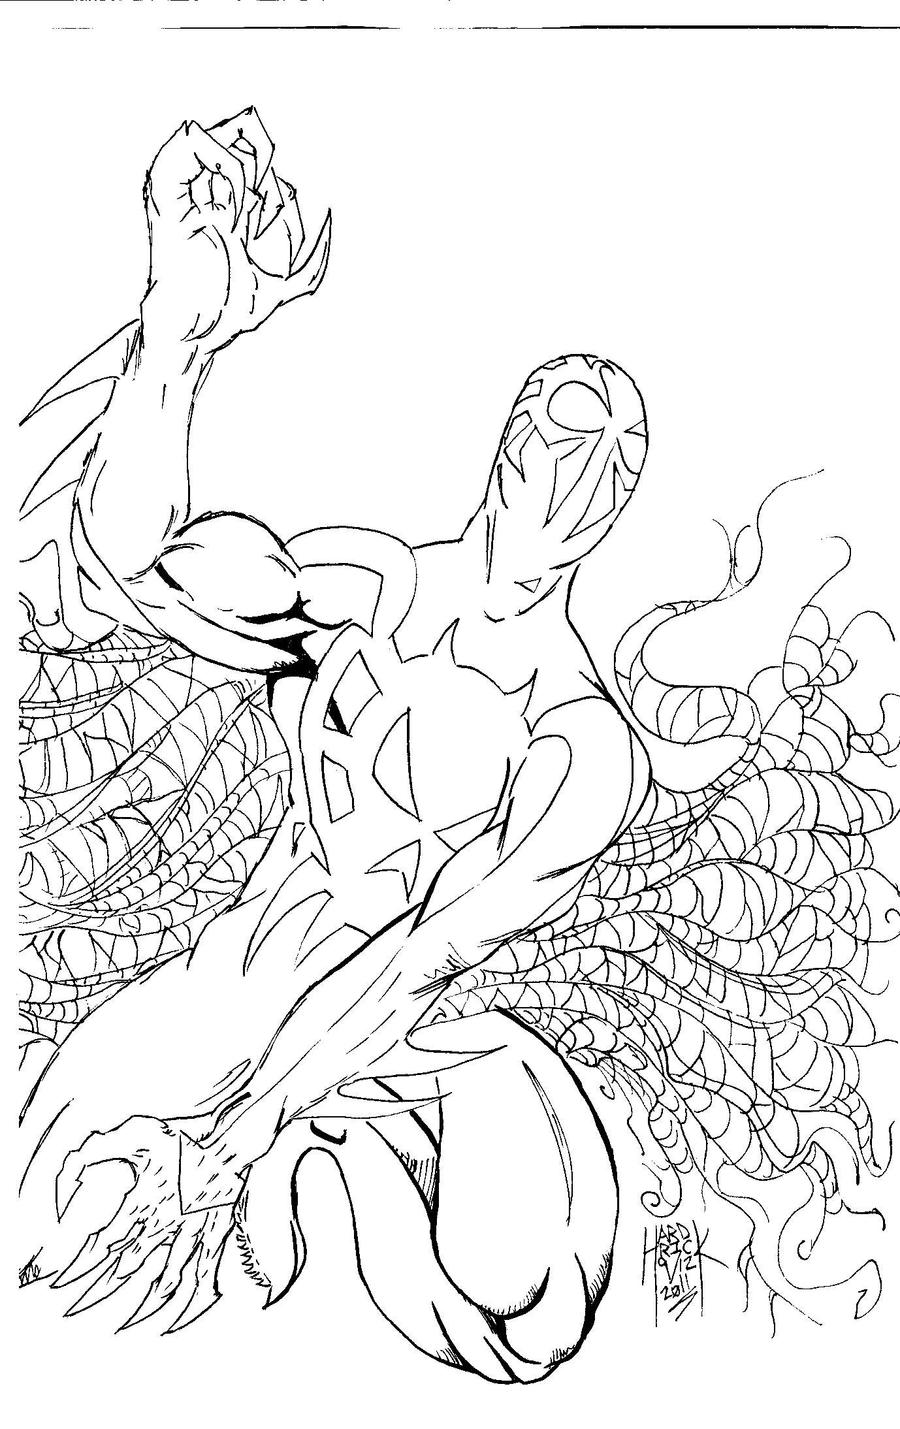 Spiderman 2099 2 by hardrickart on deviantart for Spider man 2099 coloring pages